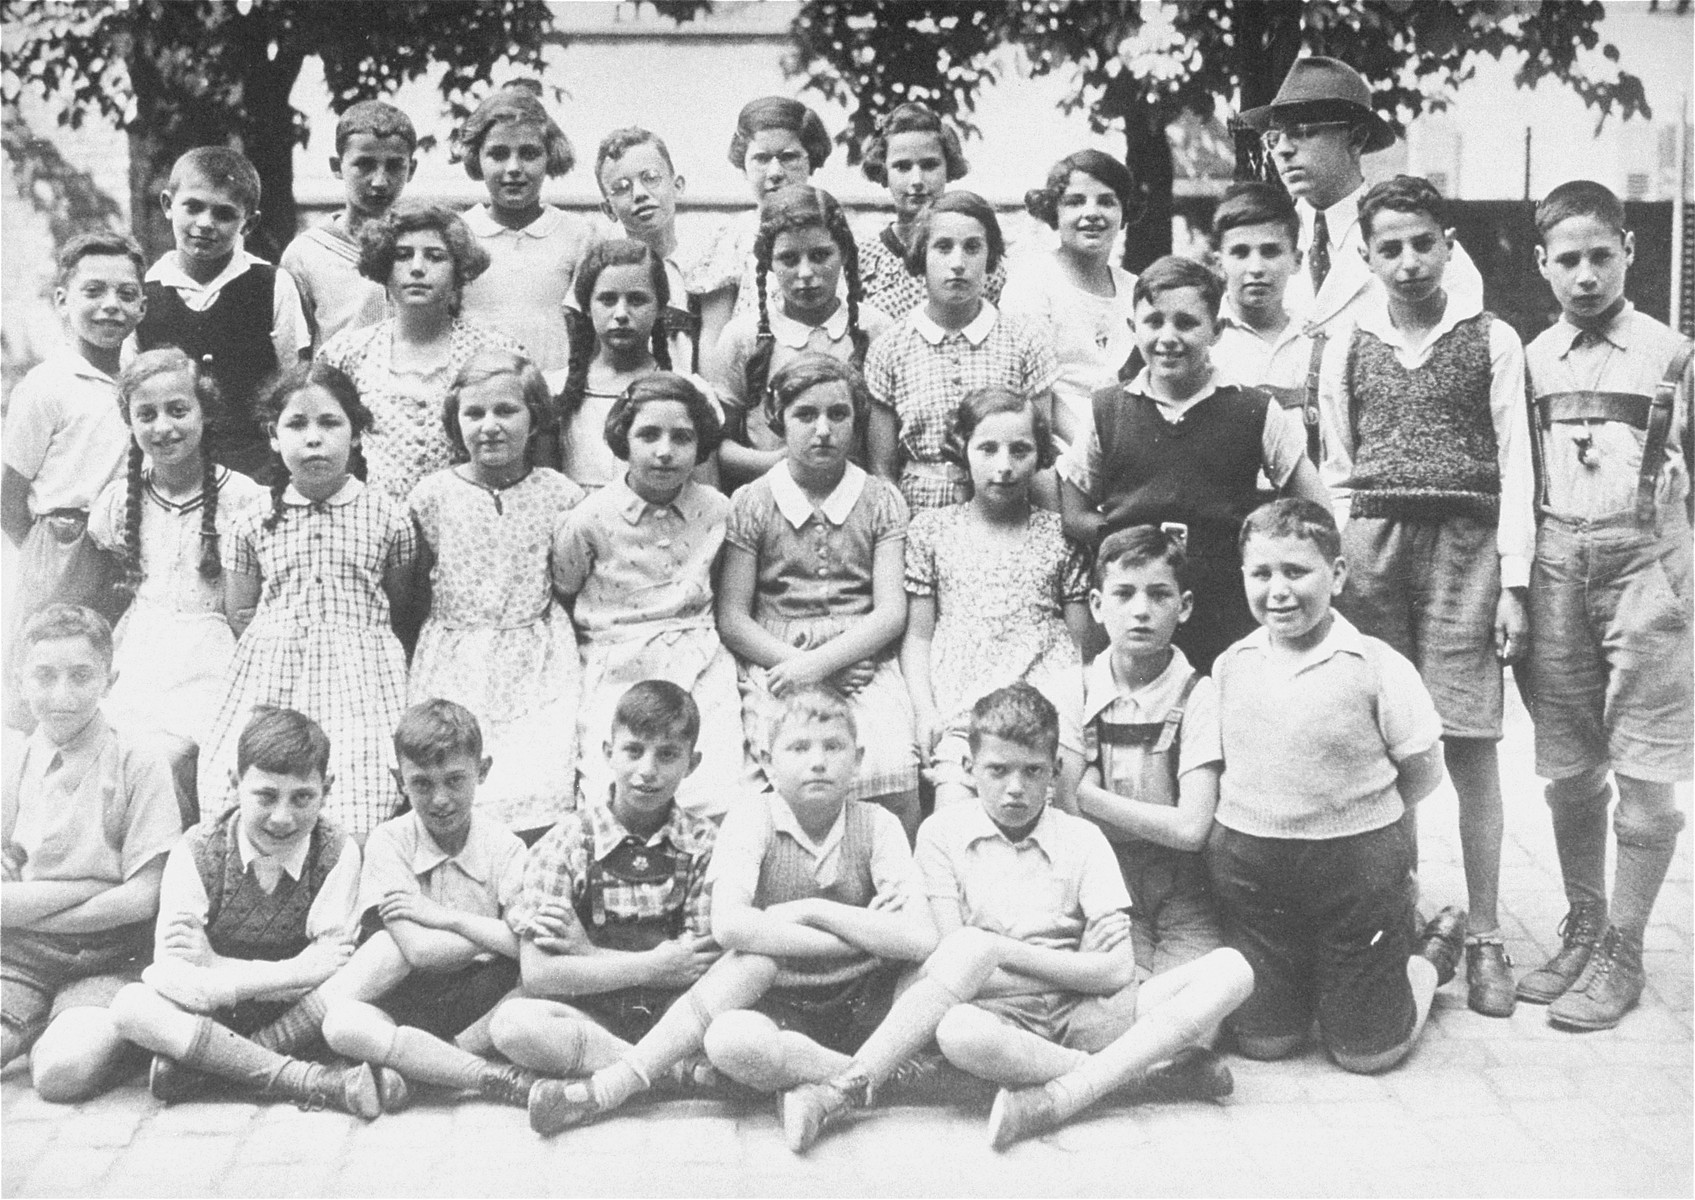 Group portrait of pupils in the fifth grade at a Jewish school in Karlsruhe, Germany that had been relocated to one floor at the 'Holzbodengymnasium' a special school for mentally disabled children.   Among those pictured is the teacher, Ludwig Hemmerdinger.